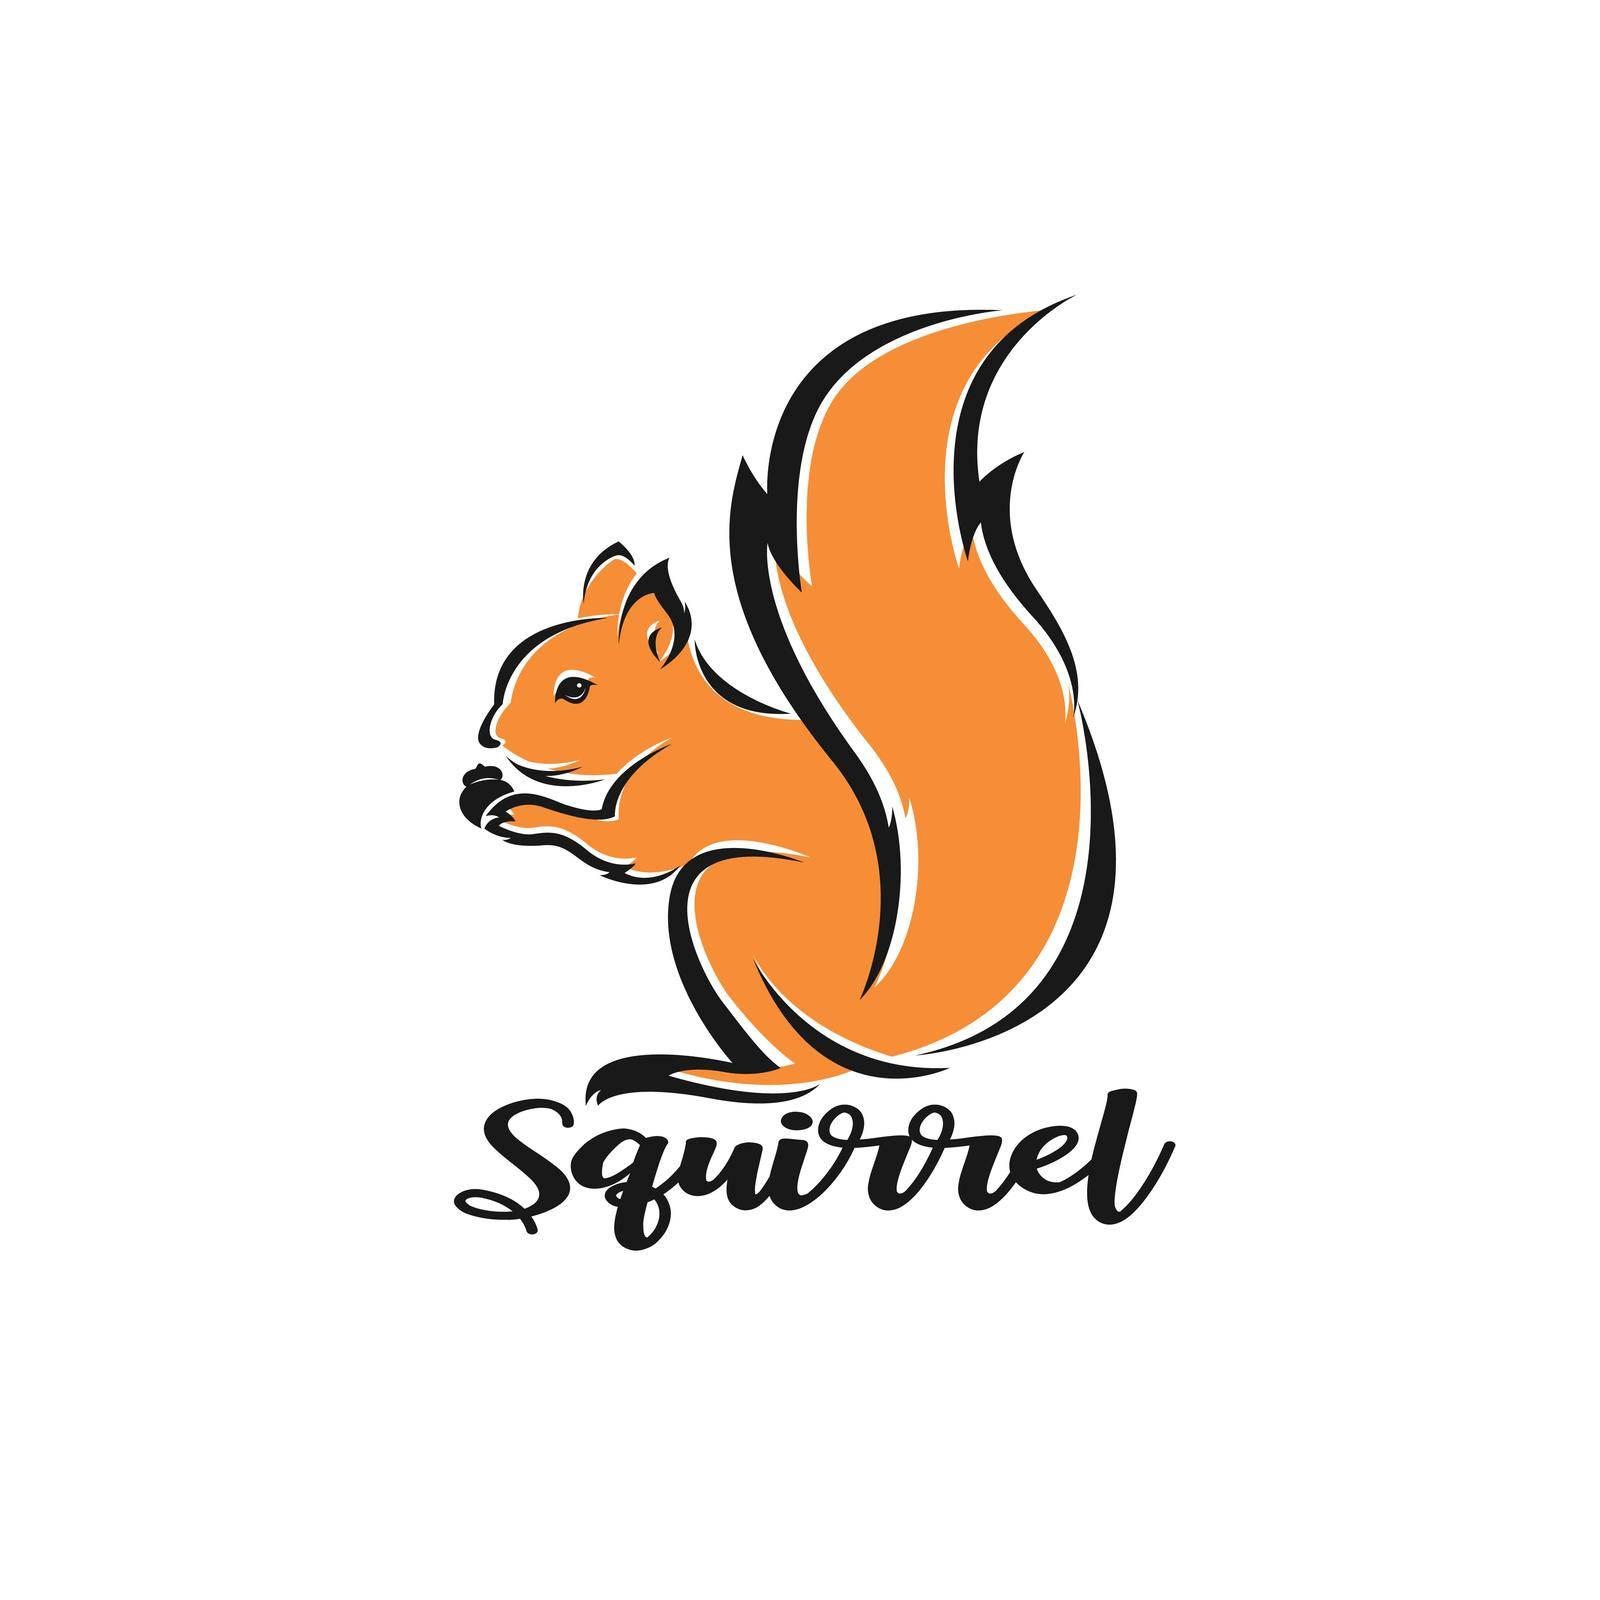 Vector of squirrel design on white background. Easy editable layered vector illustration. Wild Animals.